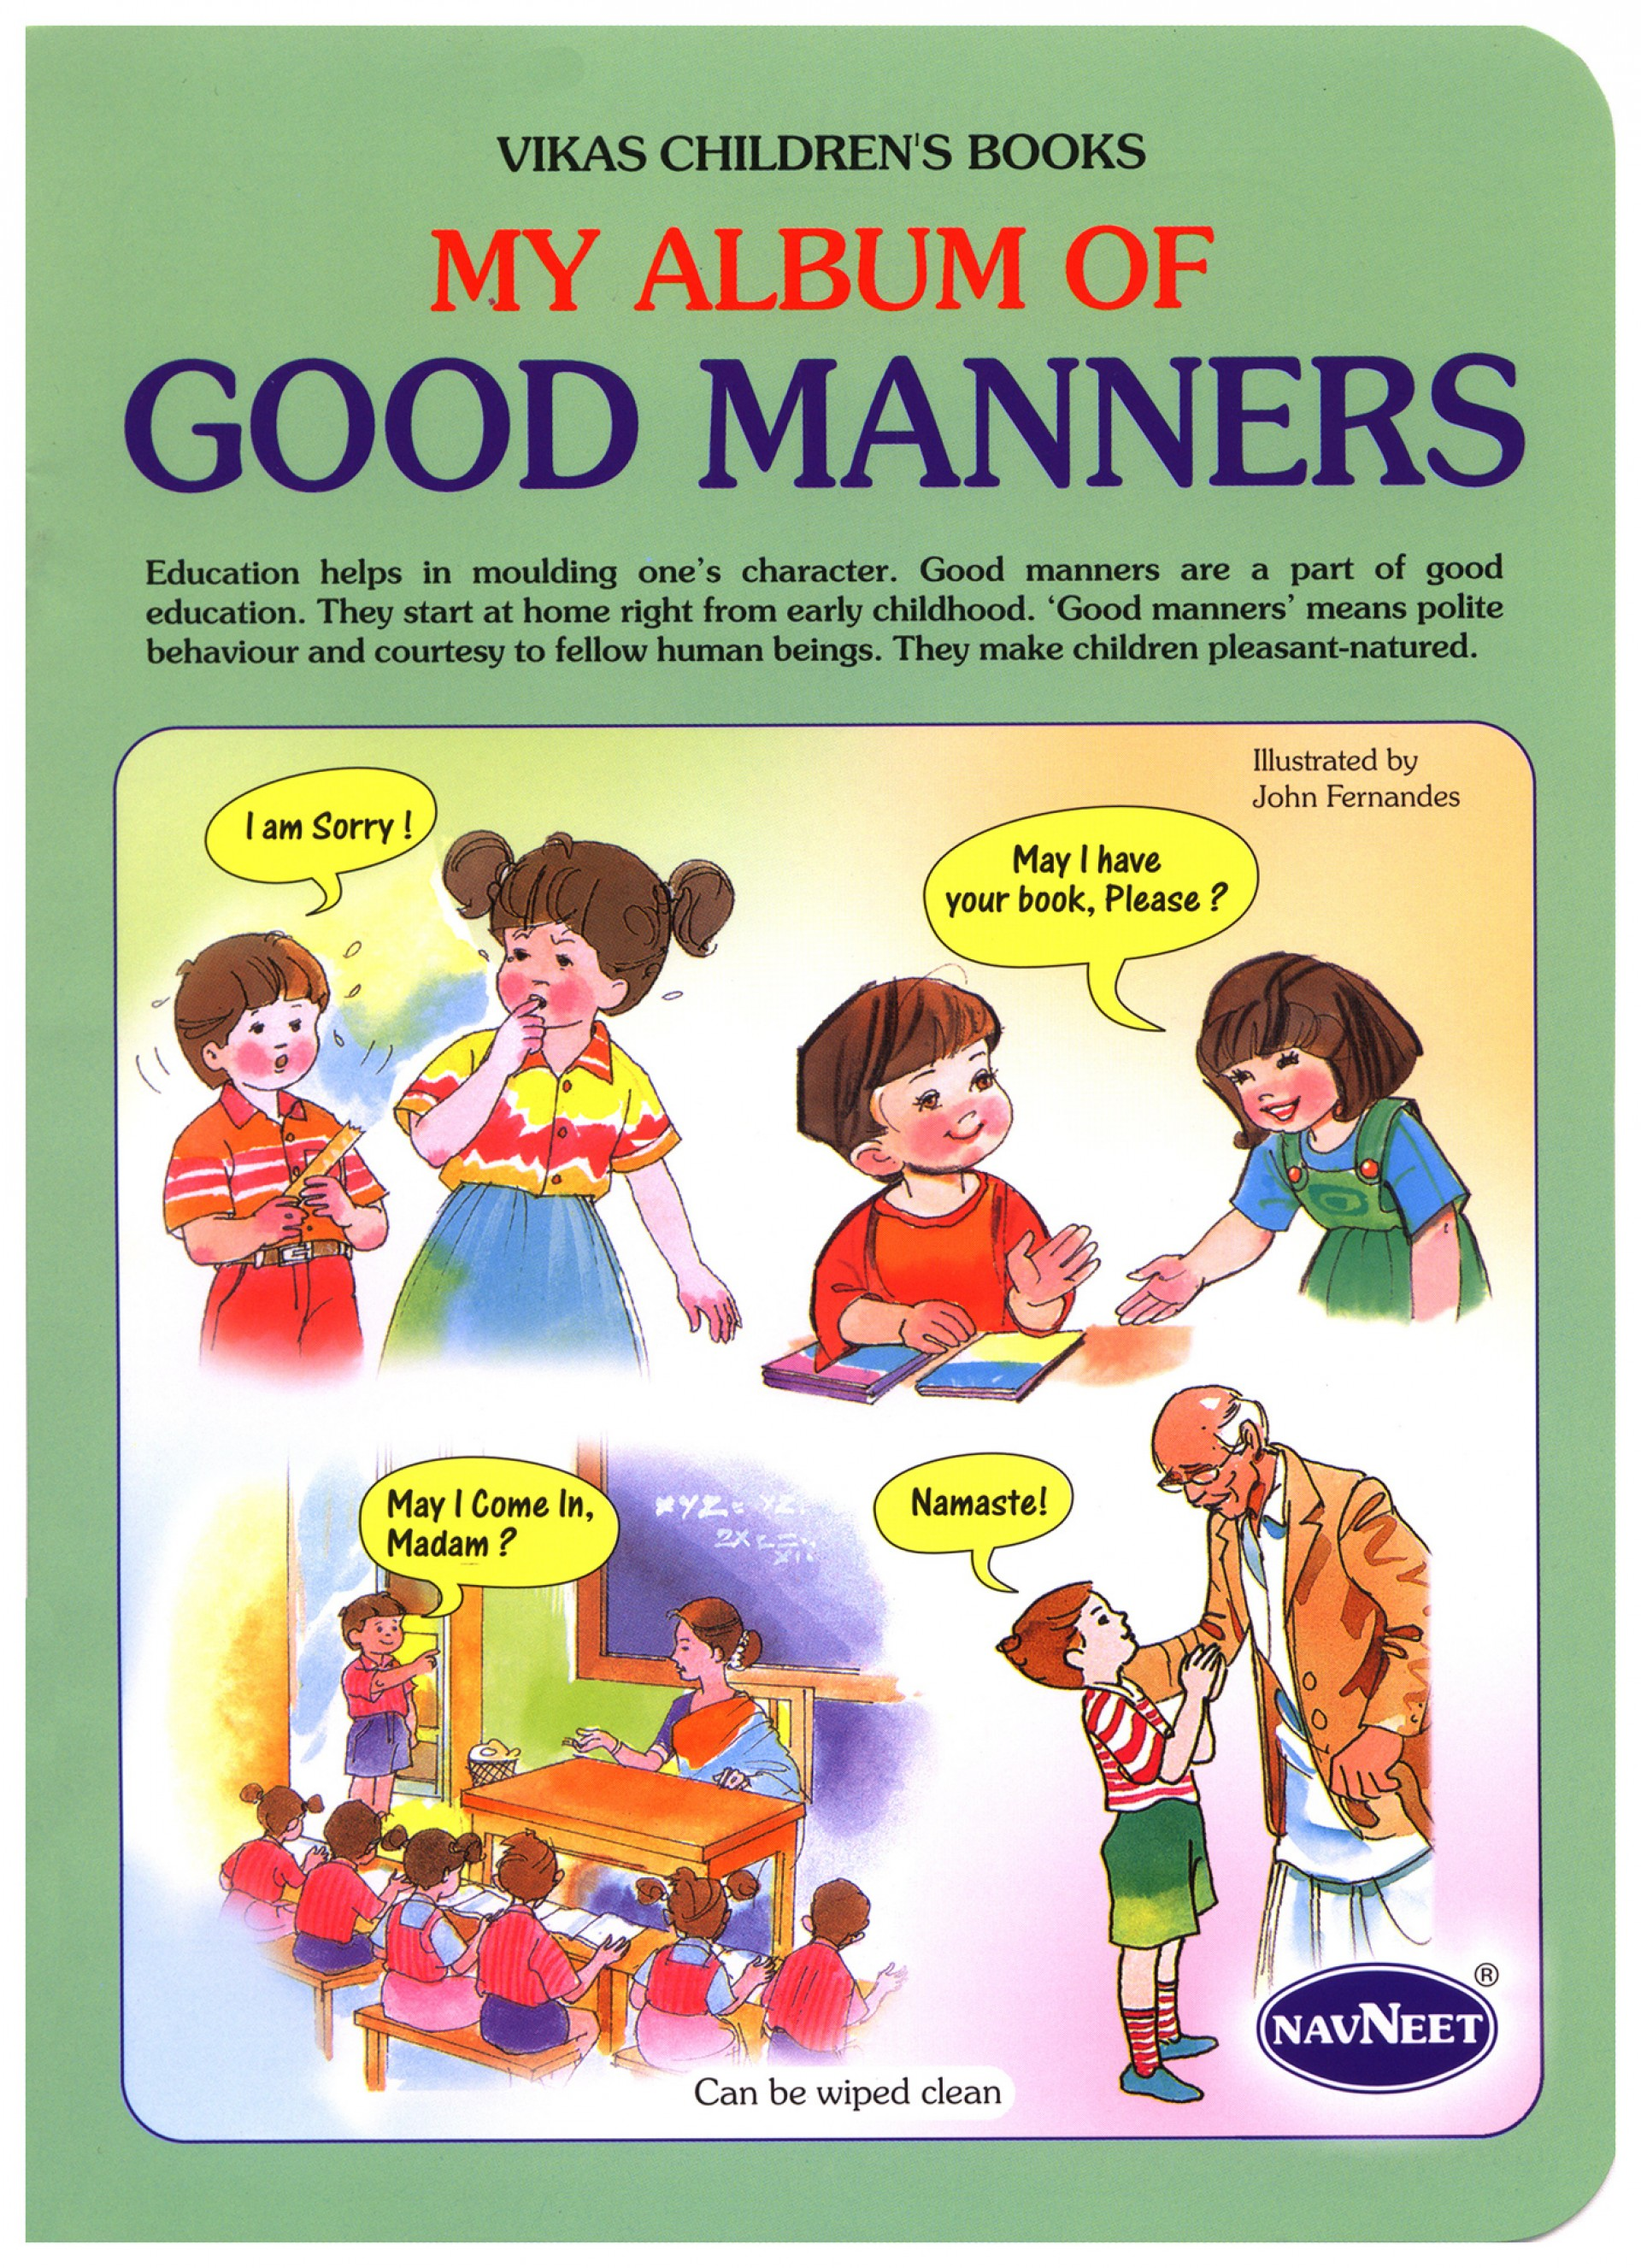 007 Basic Table Manners Essay On Good For Child Wonderful 1920